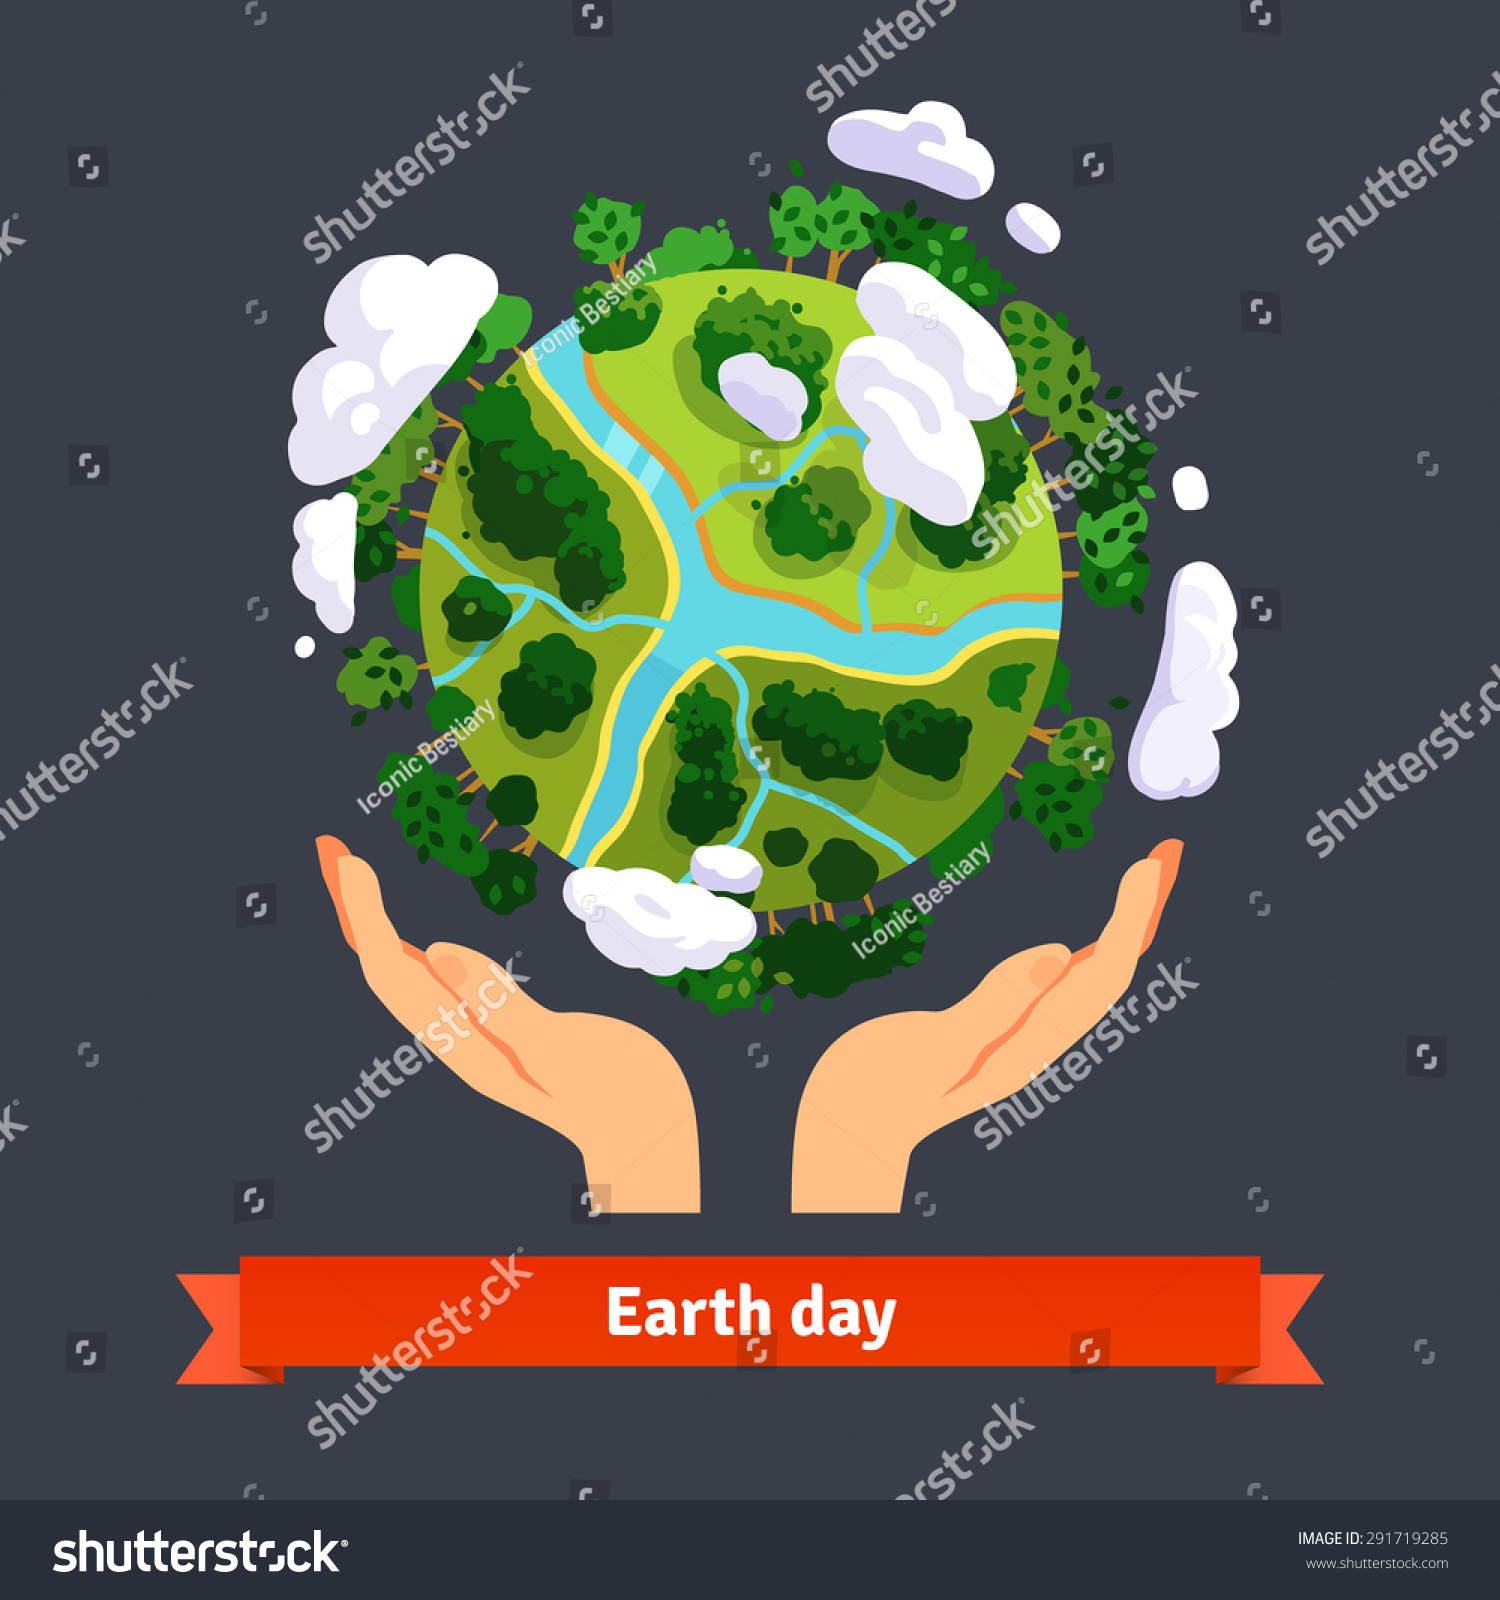 save our planet earth essay